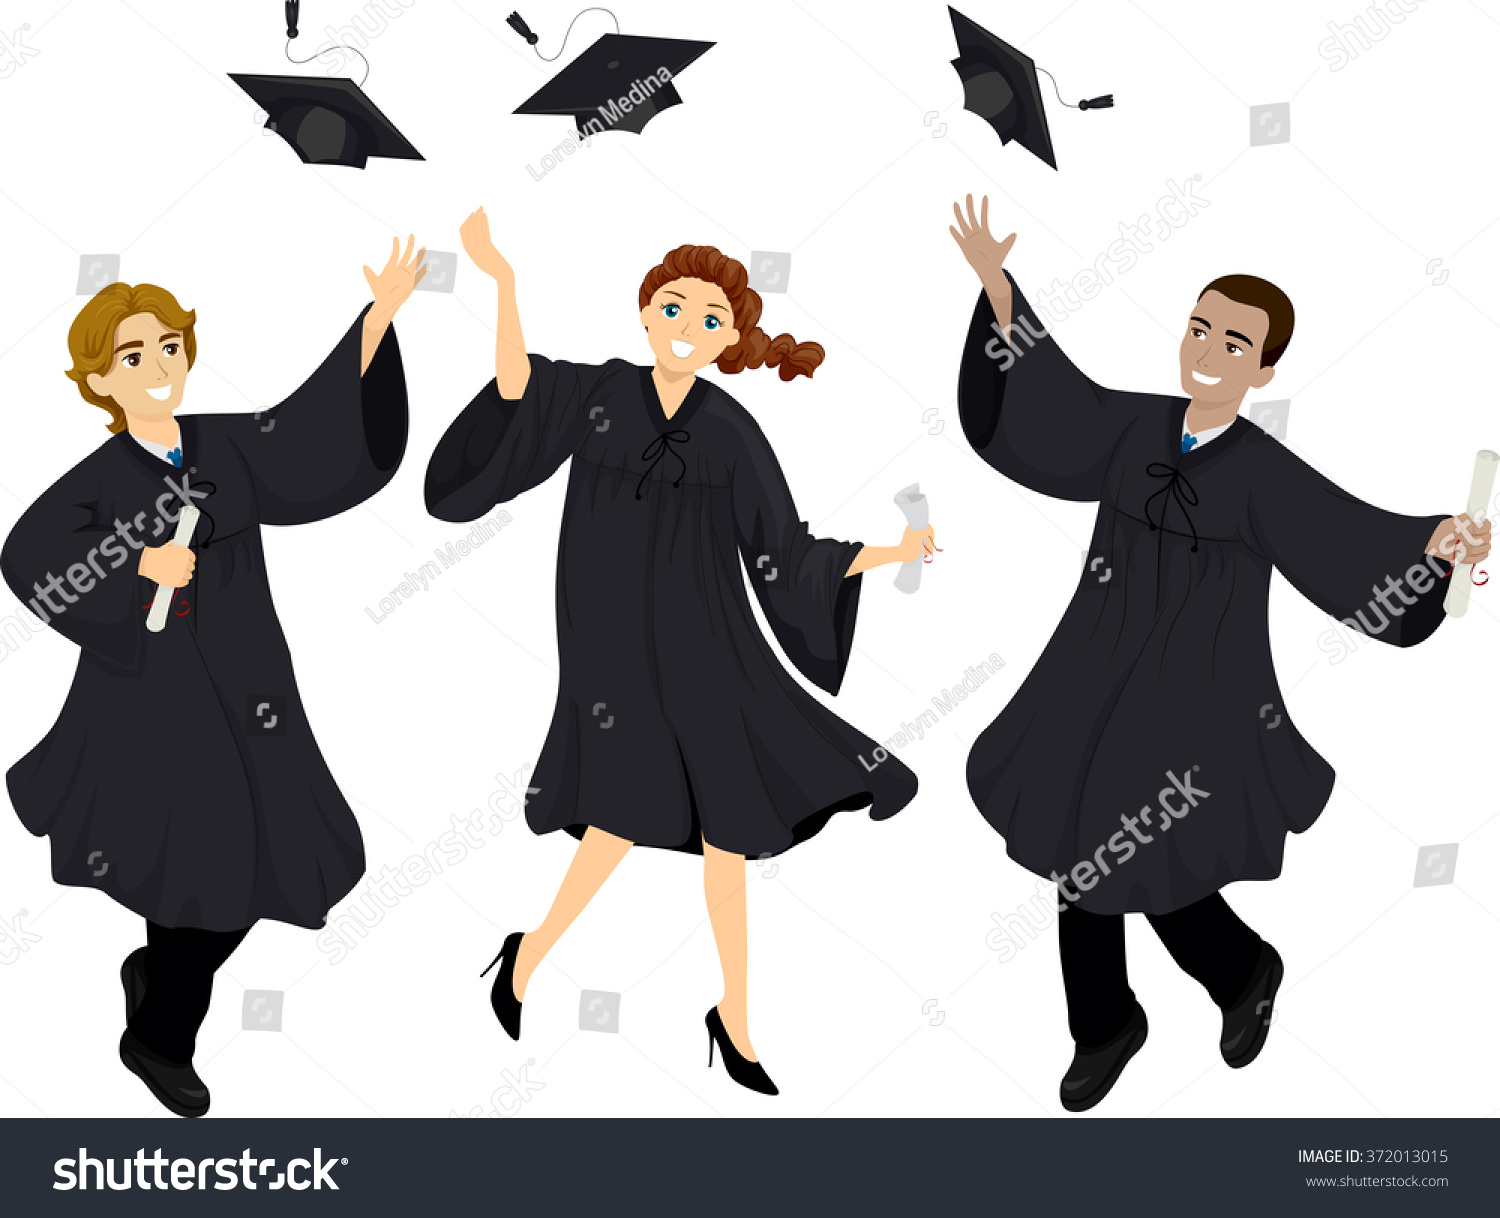 stock-vector-illustration-of-college-graduate-students-wearing-graduation-cap-and-gown-372013015.jpg